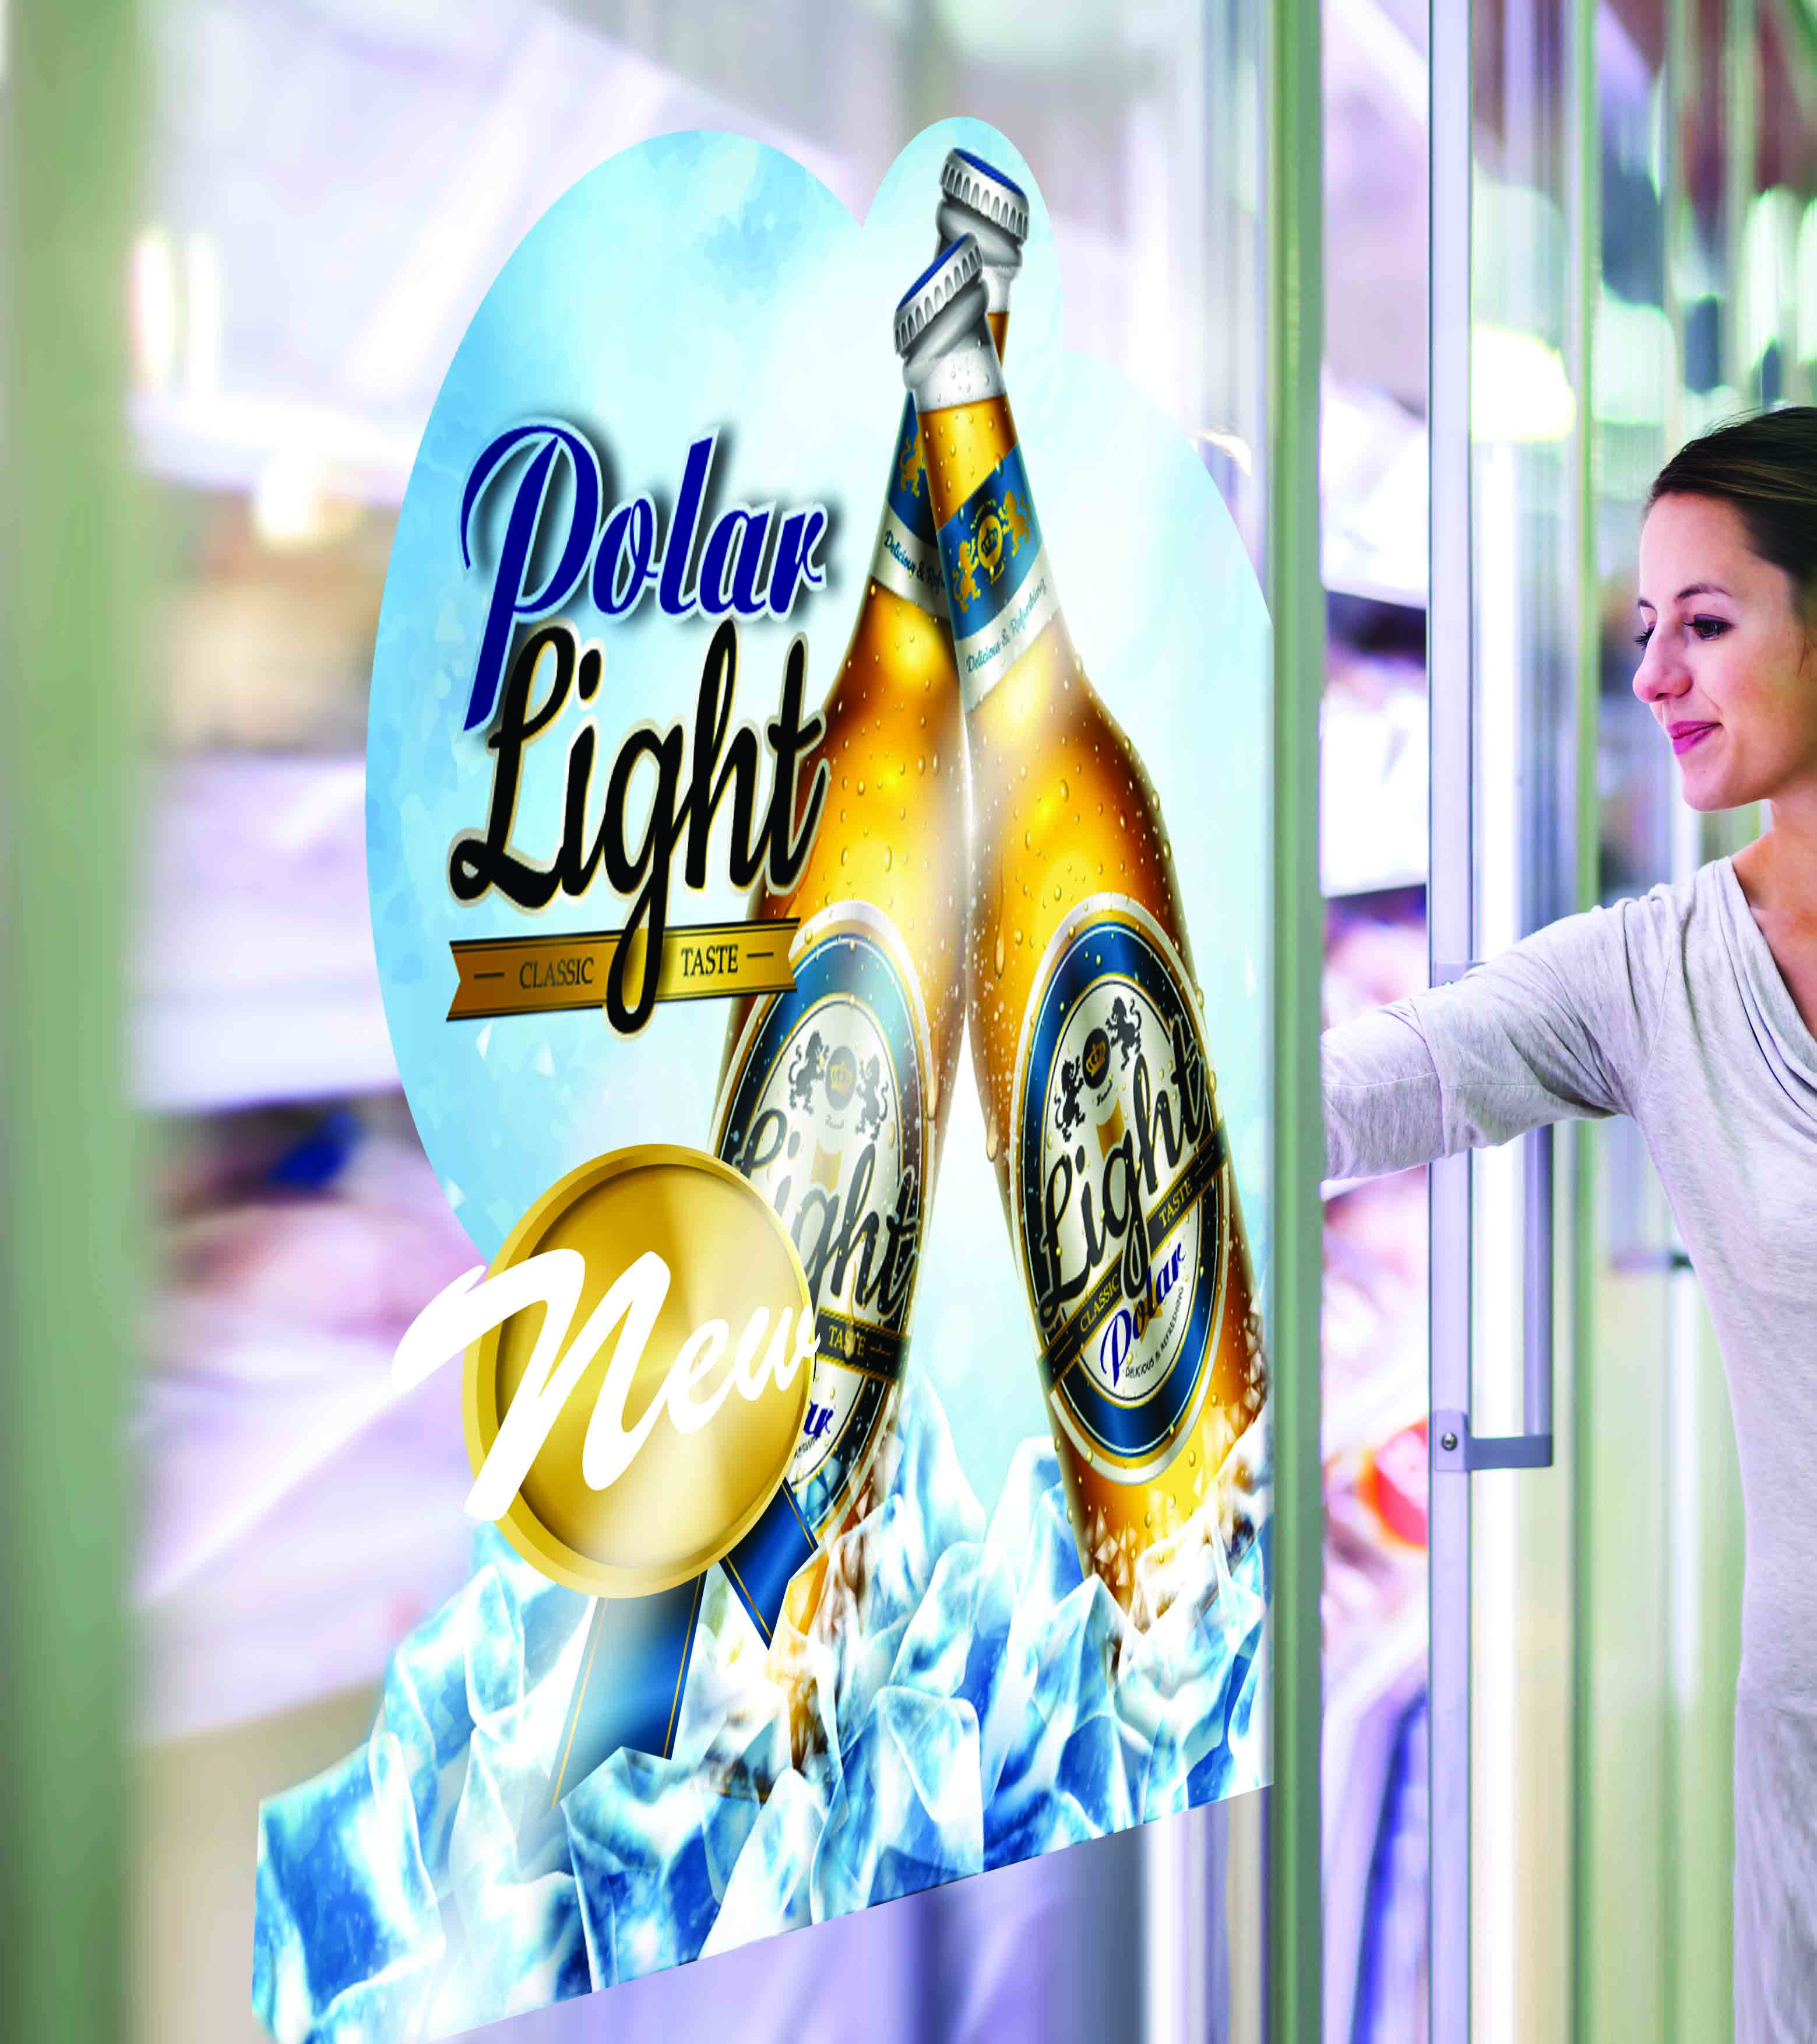 Backlit window graphics in retail locations